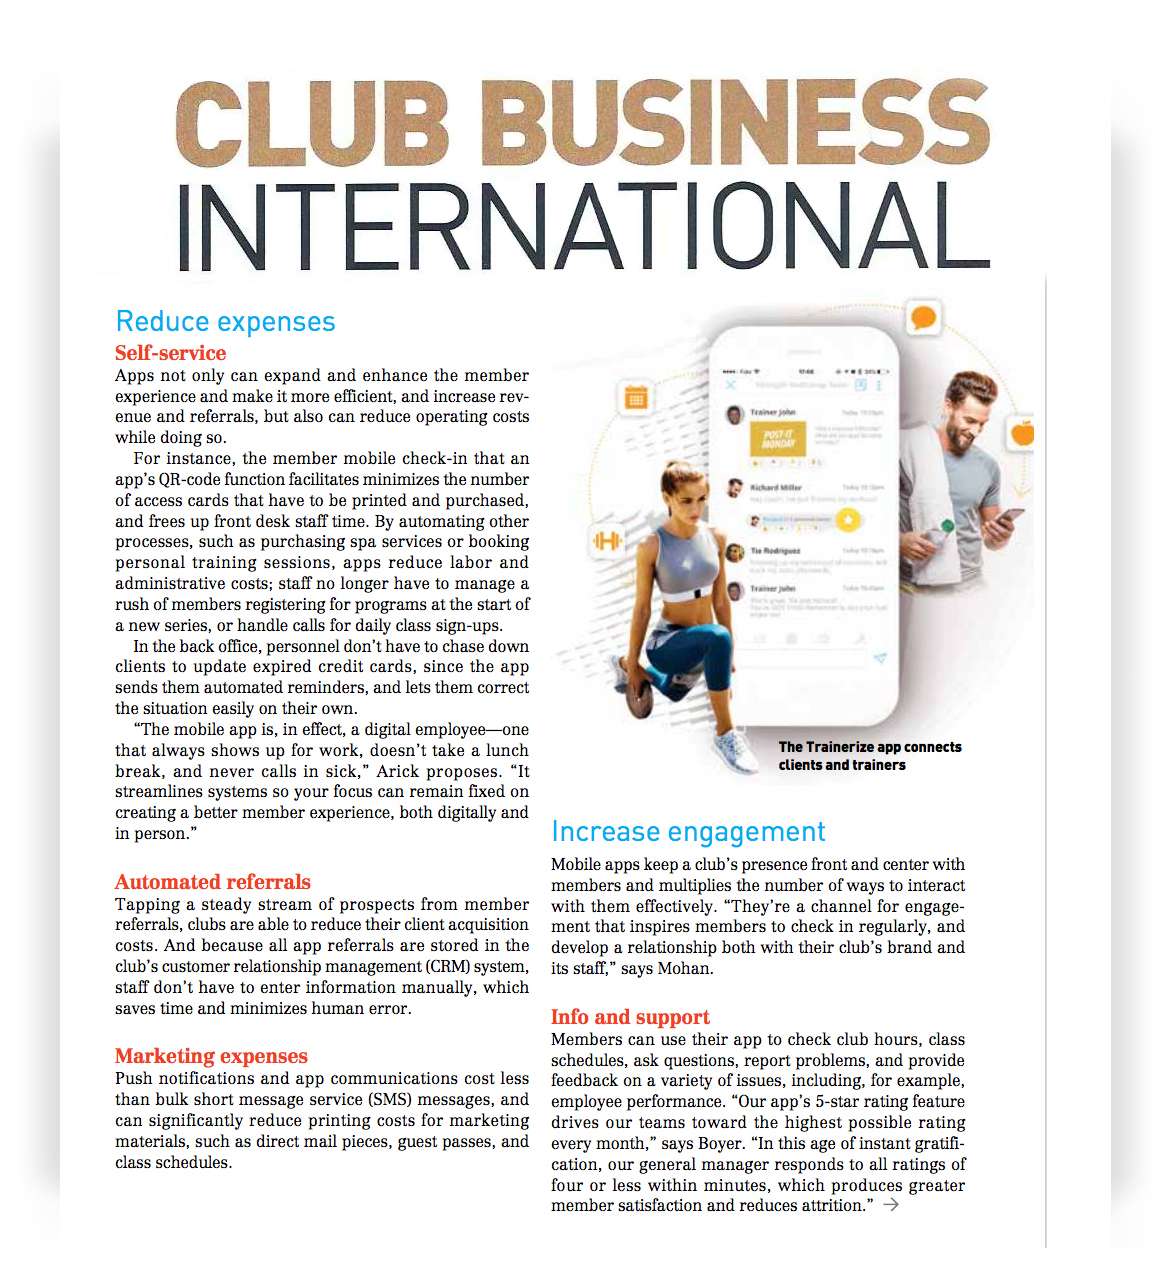 Trainerize CEO Talks Mobile Fitness Technology with Club Business International Magazine